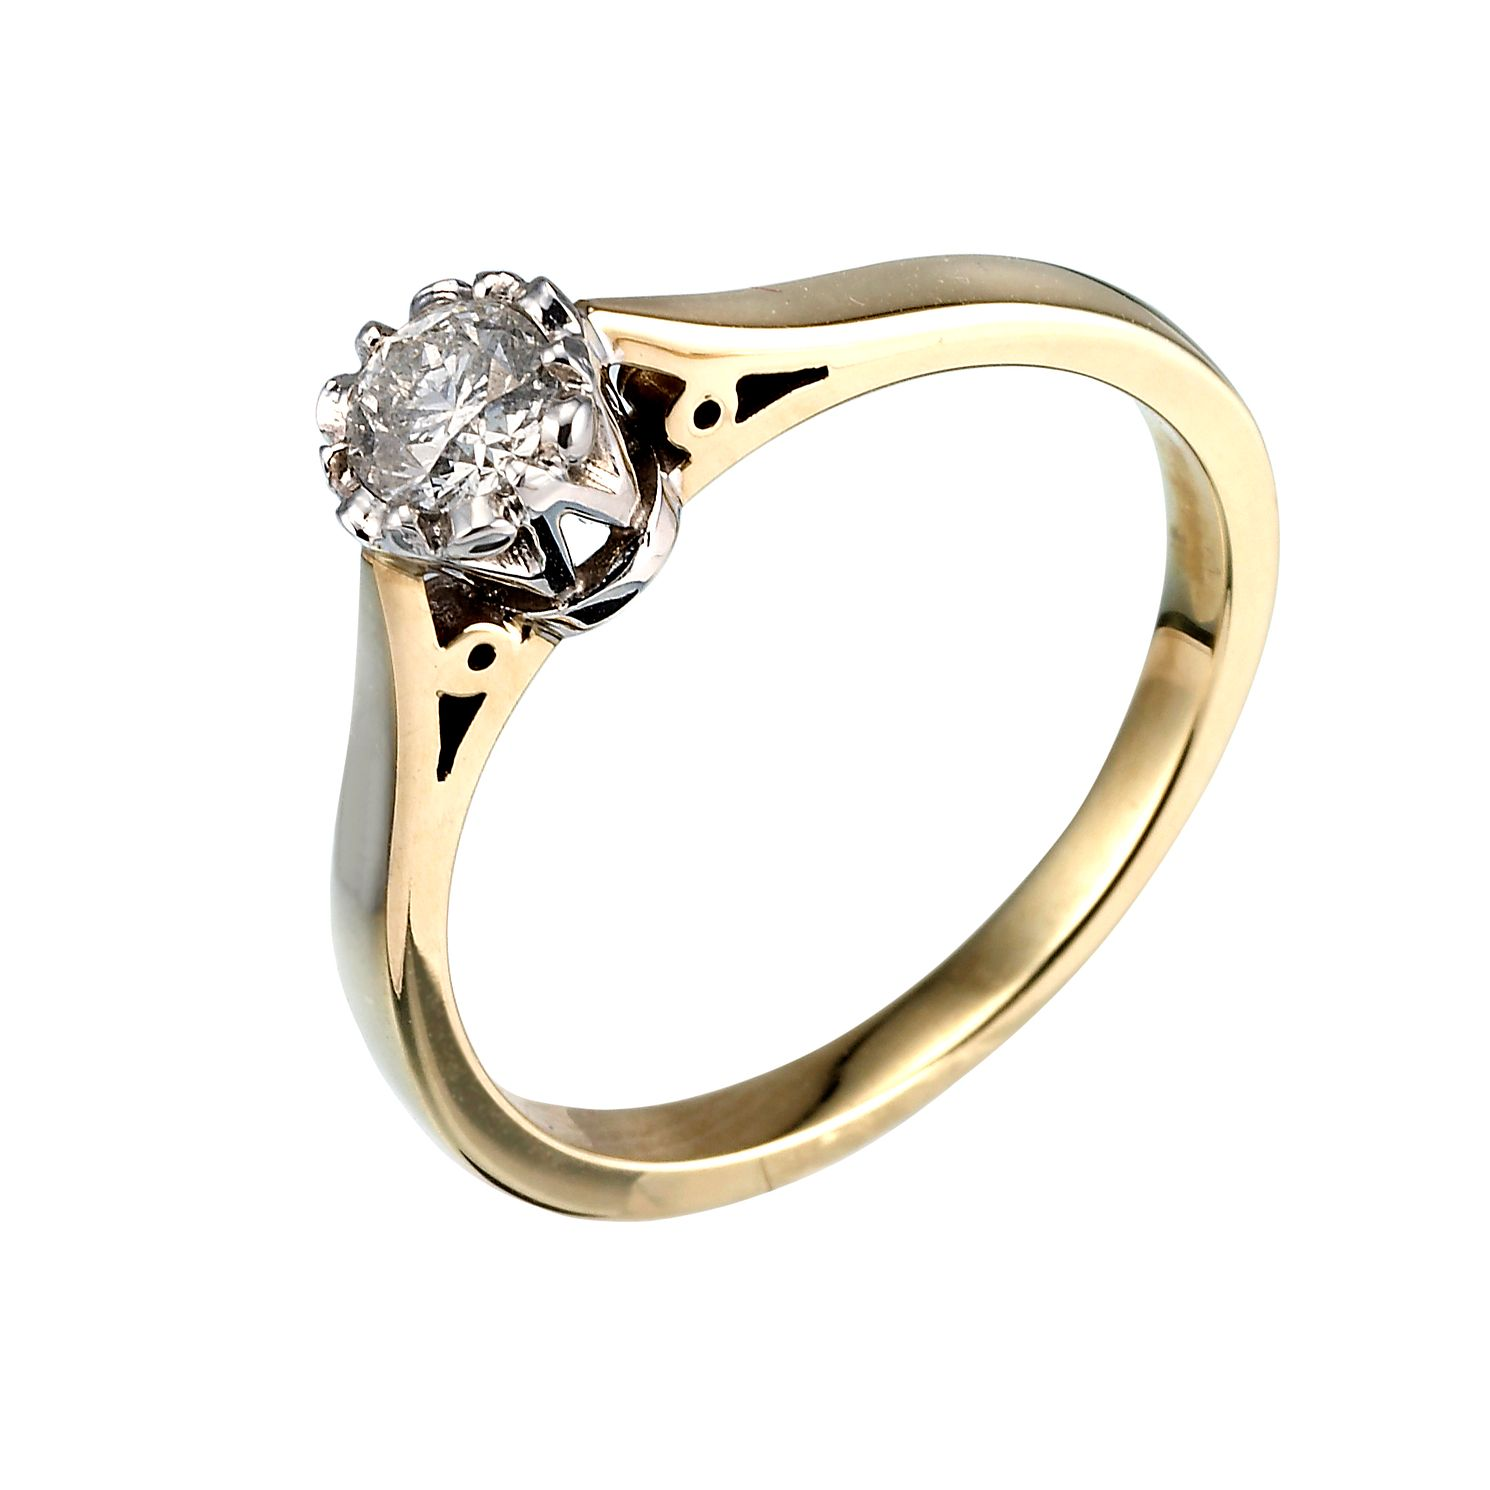 setting bridal the eshop this co rings will incredible your gold on capture look which imagination exquisite gabriel anyone banners rose engagement engagementrings ring of diamond complements indeed hand pieces these jewellery